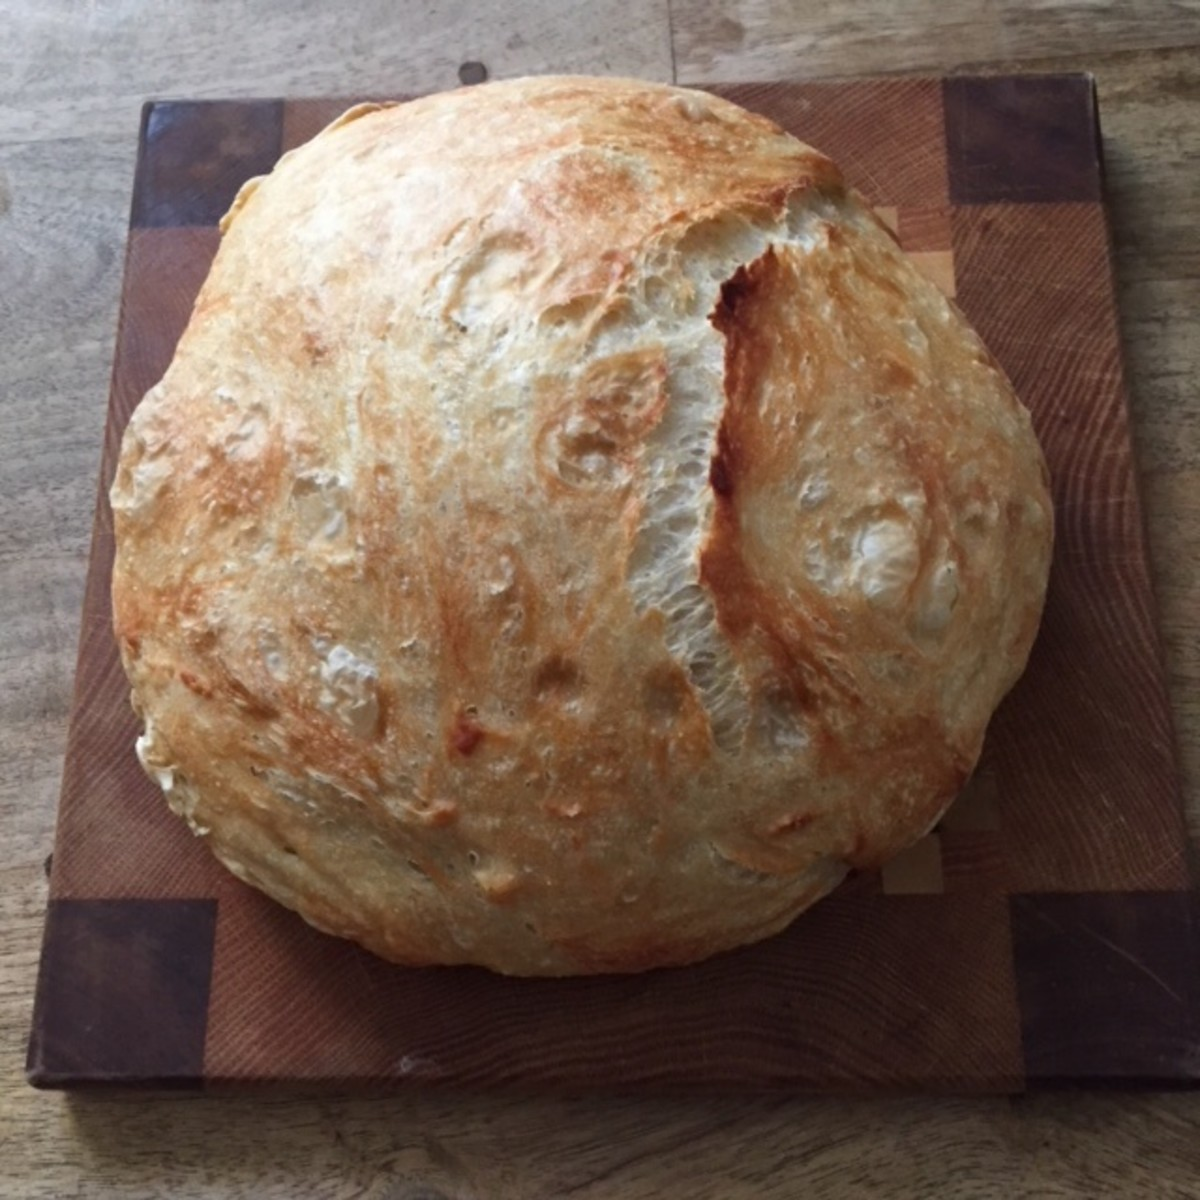 A must for my family recipe collection in progress: the tender, crusty no-knead bread method I've finally nailed!